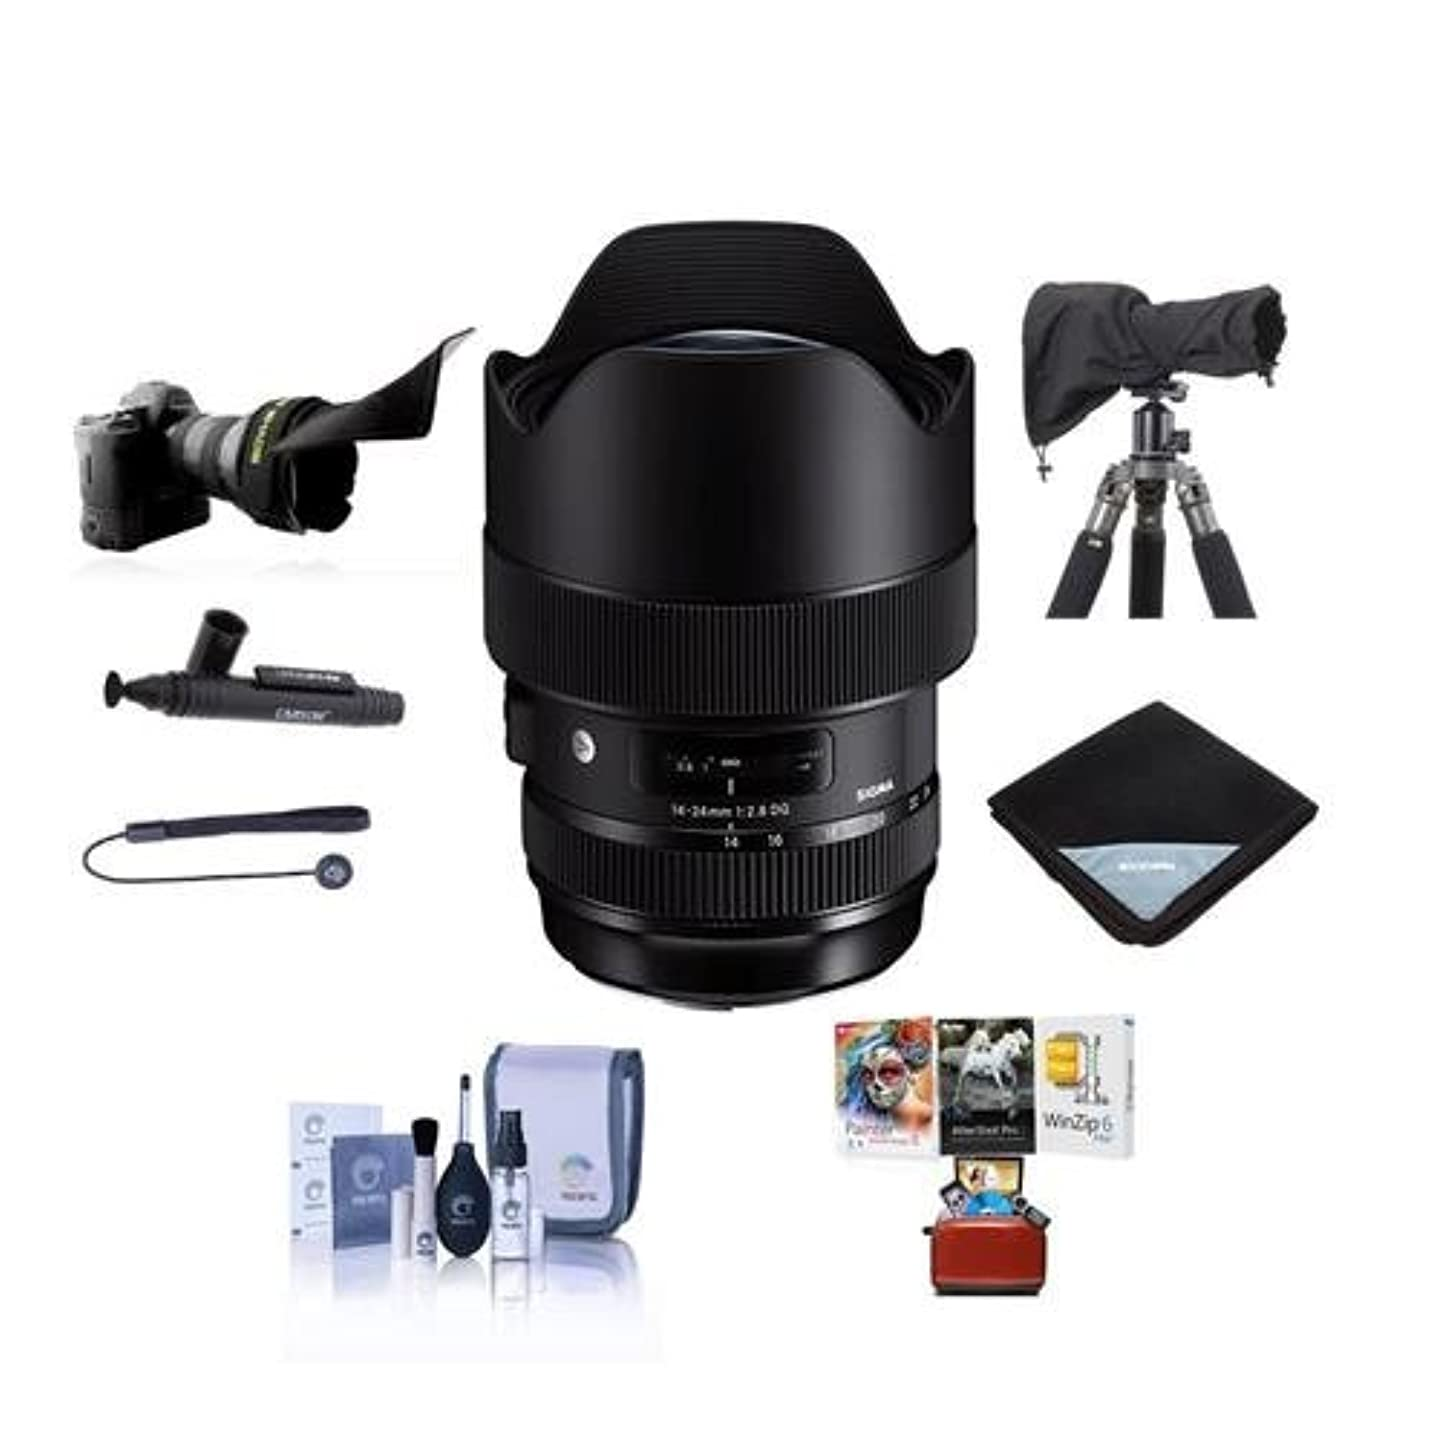 Sigma 14-24mm f/2.8 DG HSM Art Wide-Angle Zoom Lens for Canon EOS Cameras - Bundle with Lens Wrap, LensCoat Raincoat Rain Sleeve Black, Cleaning Kit, Flex Lens Shade, Mac Software Package, and More